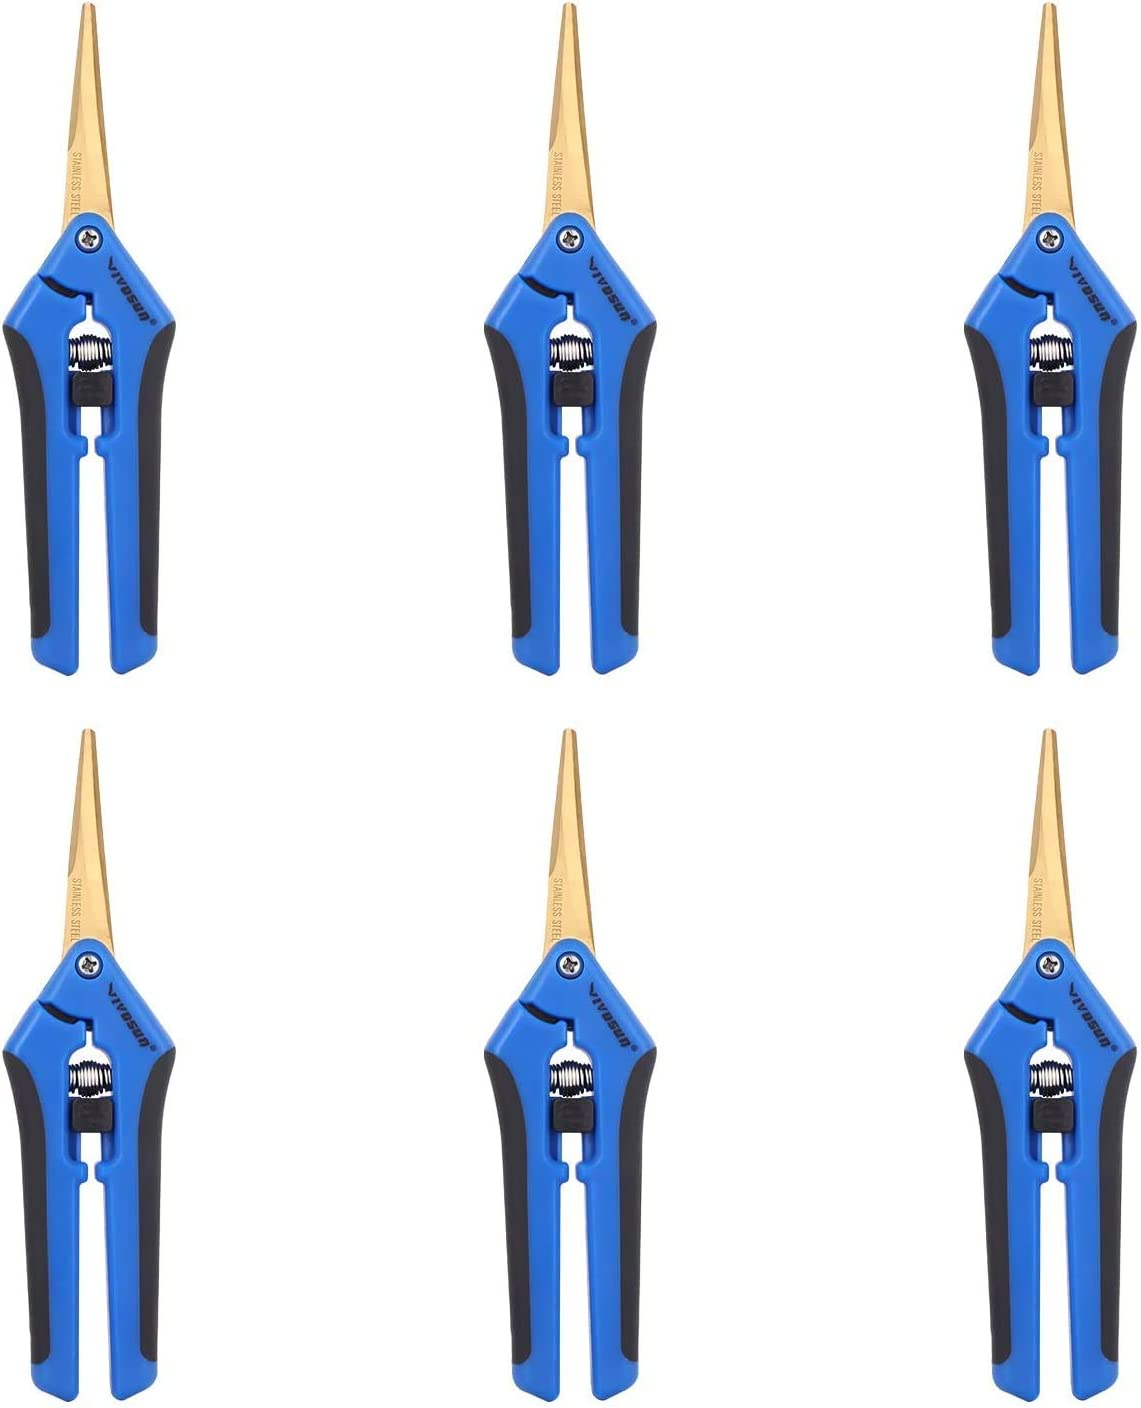 VIVOSUN 6 Pack Gardening Hand Pruner Pruning Shear with Titanium Coated Curved Precision Blades, Blue